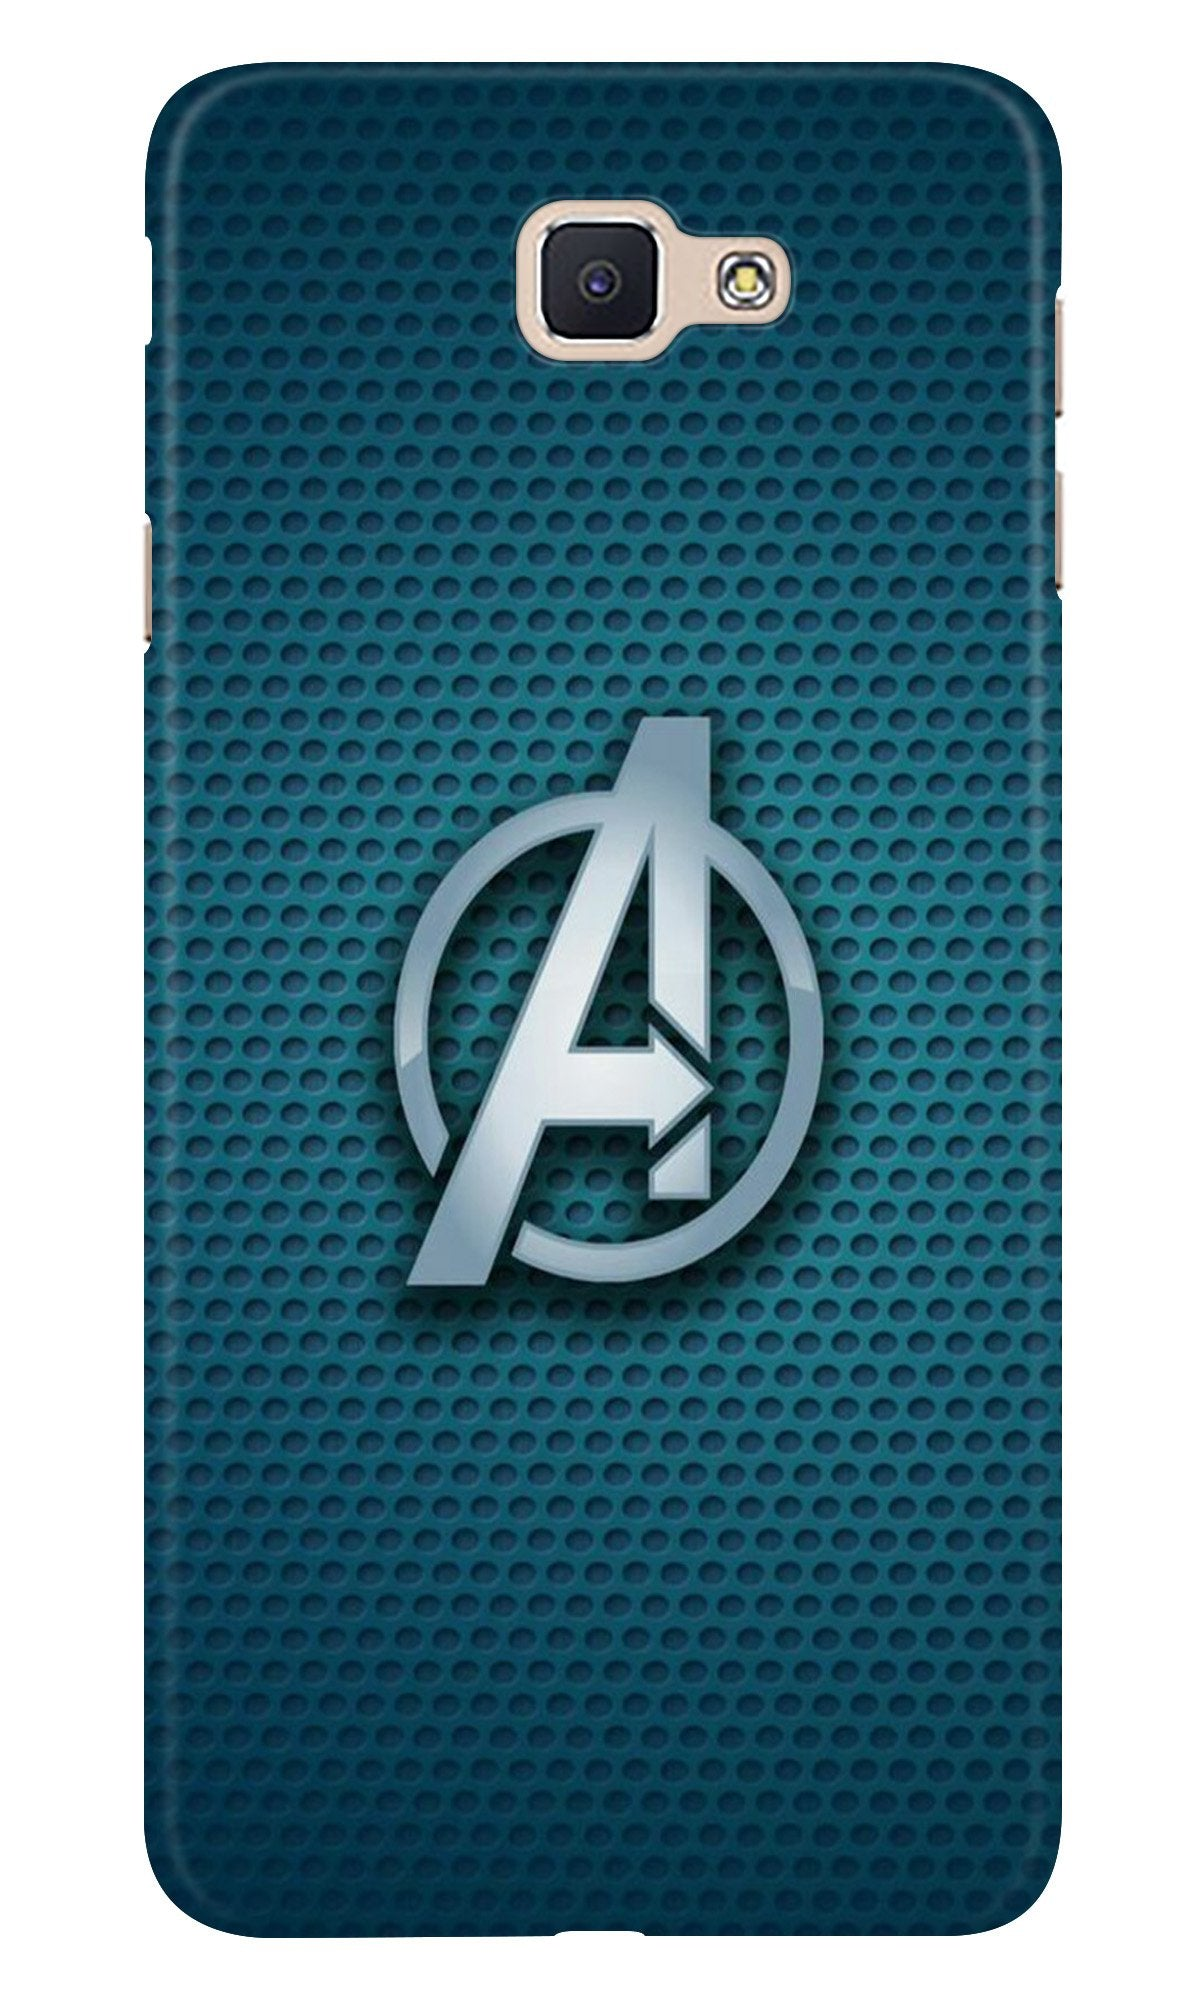 Avengers Case for Samsung Galaxy C9 Pro (Design No. 246)